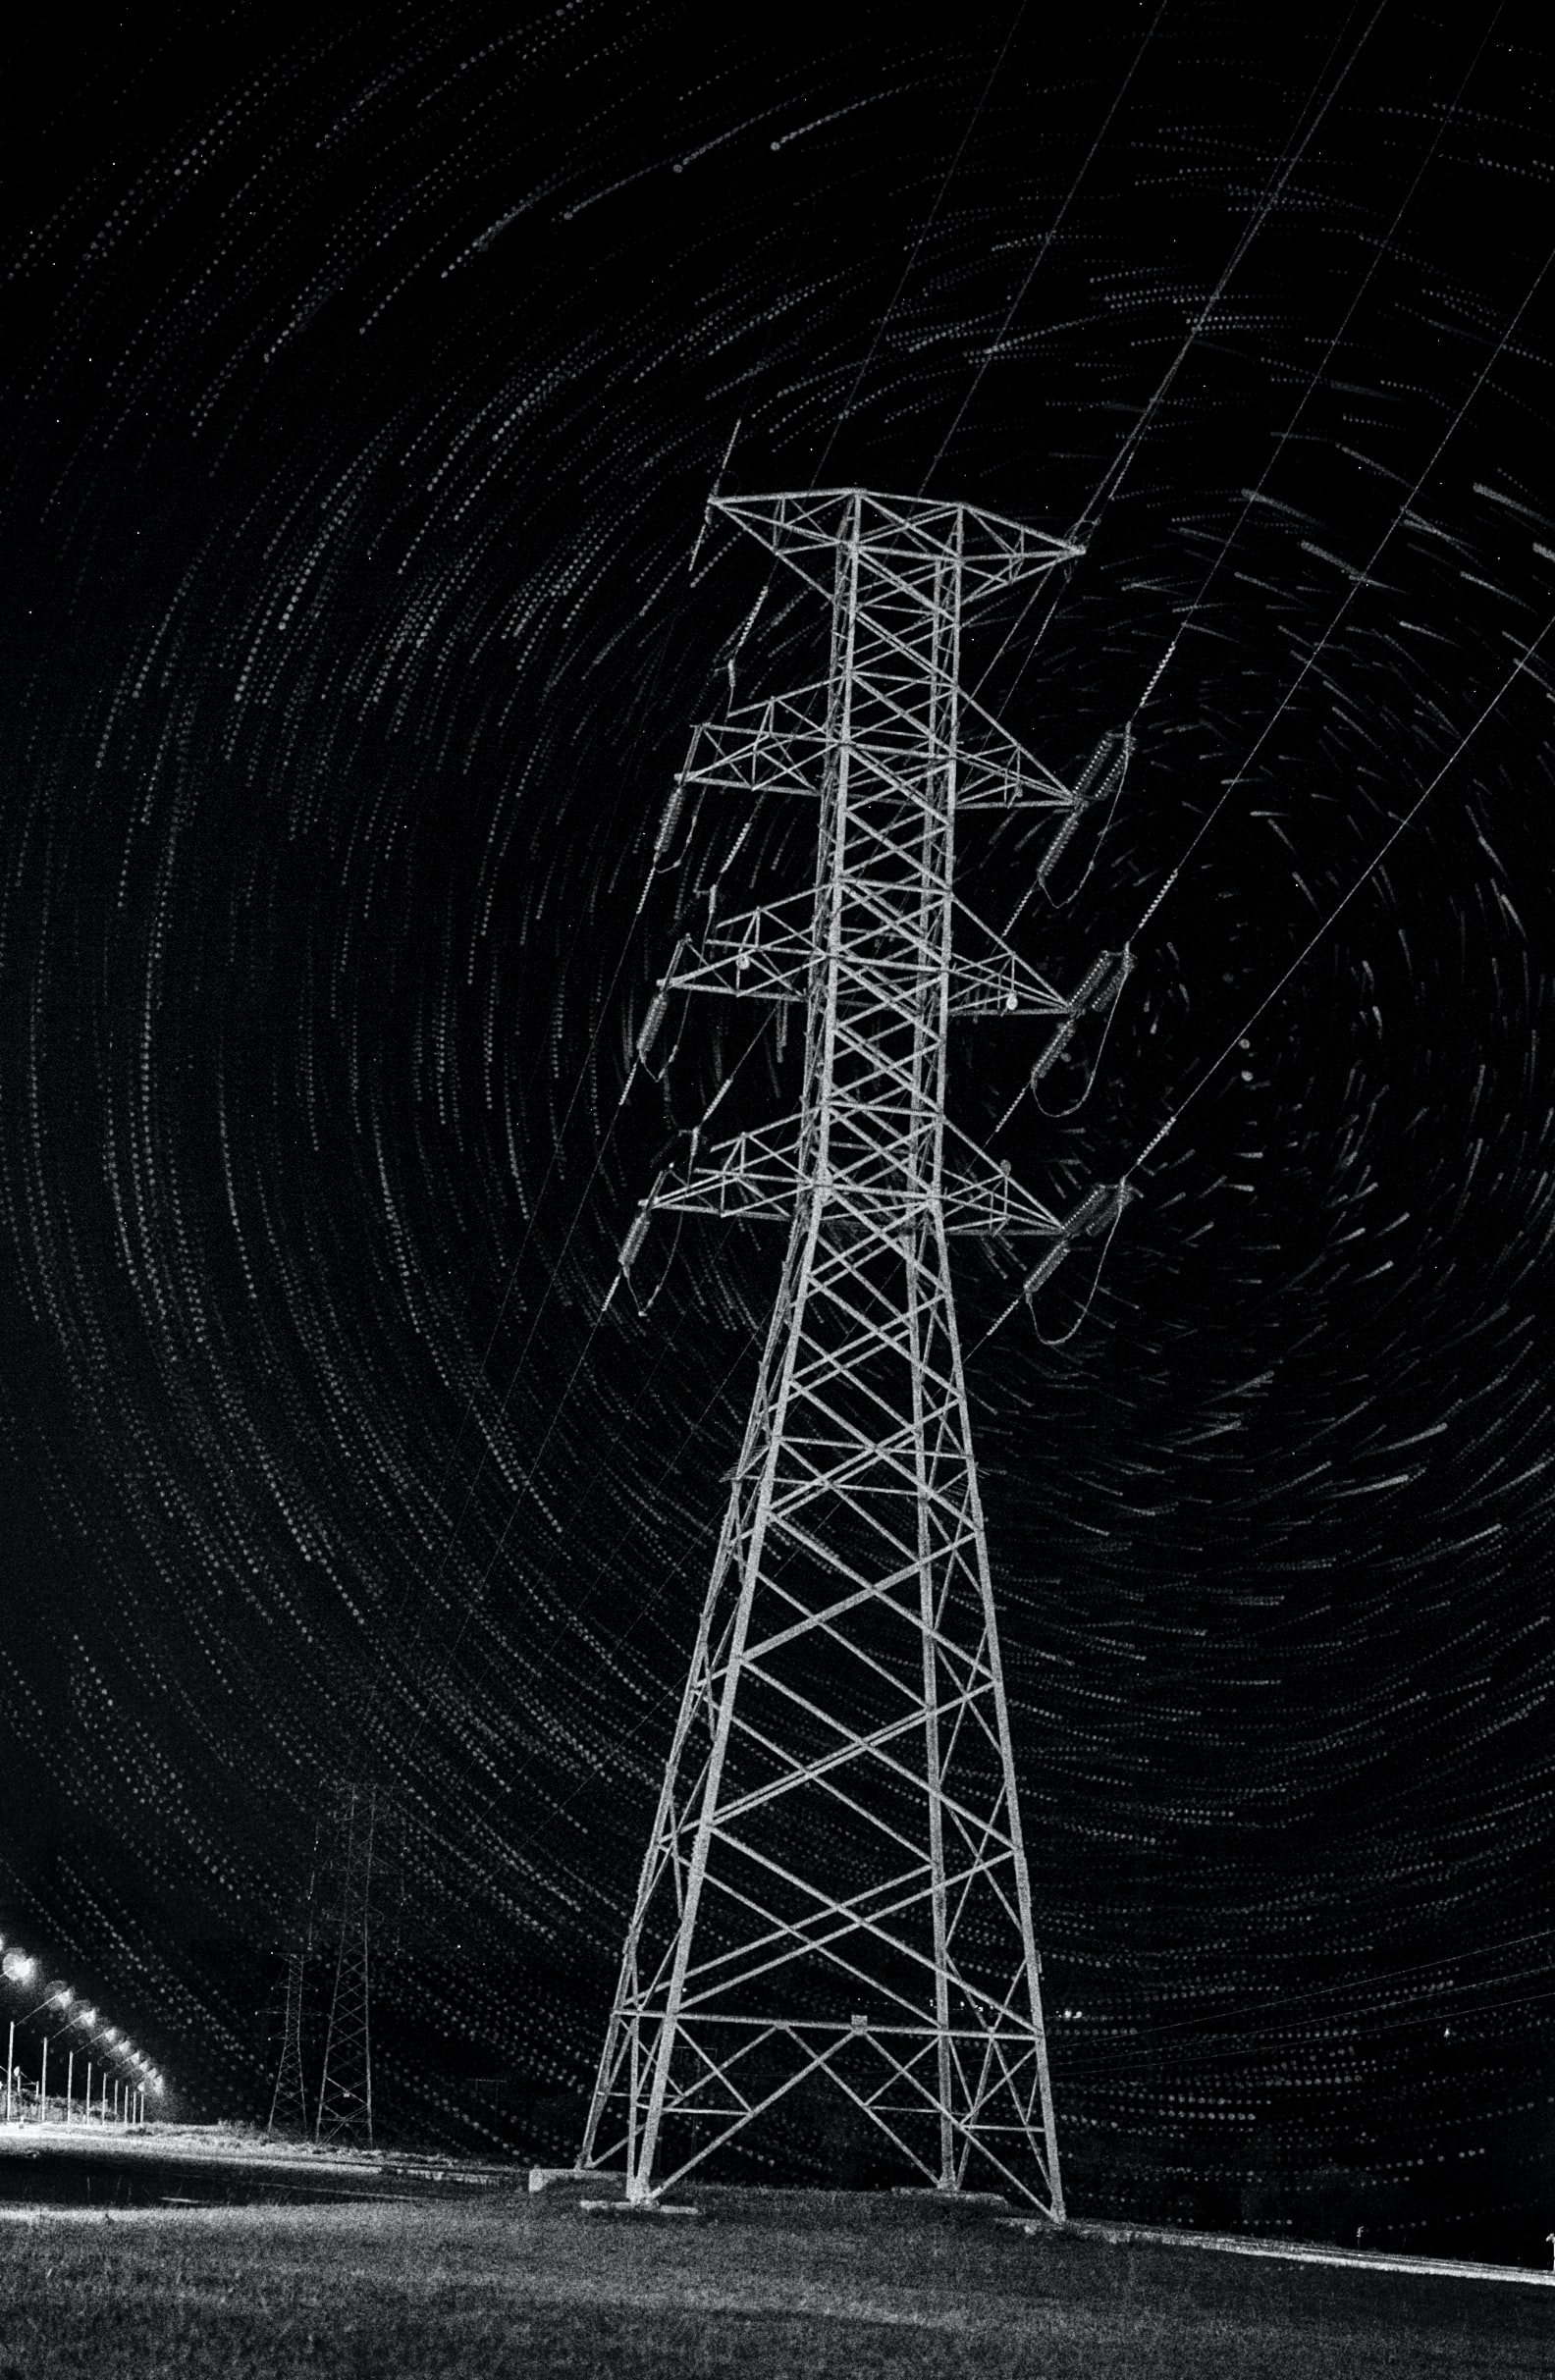 Transmission Tower Pictures Download Free Images On Unsplash